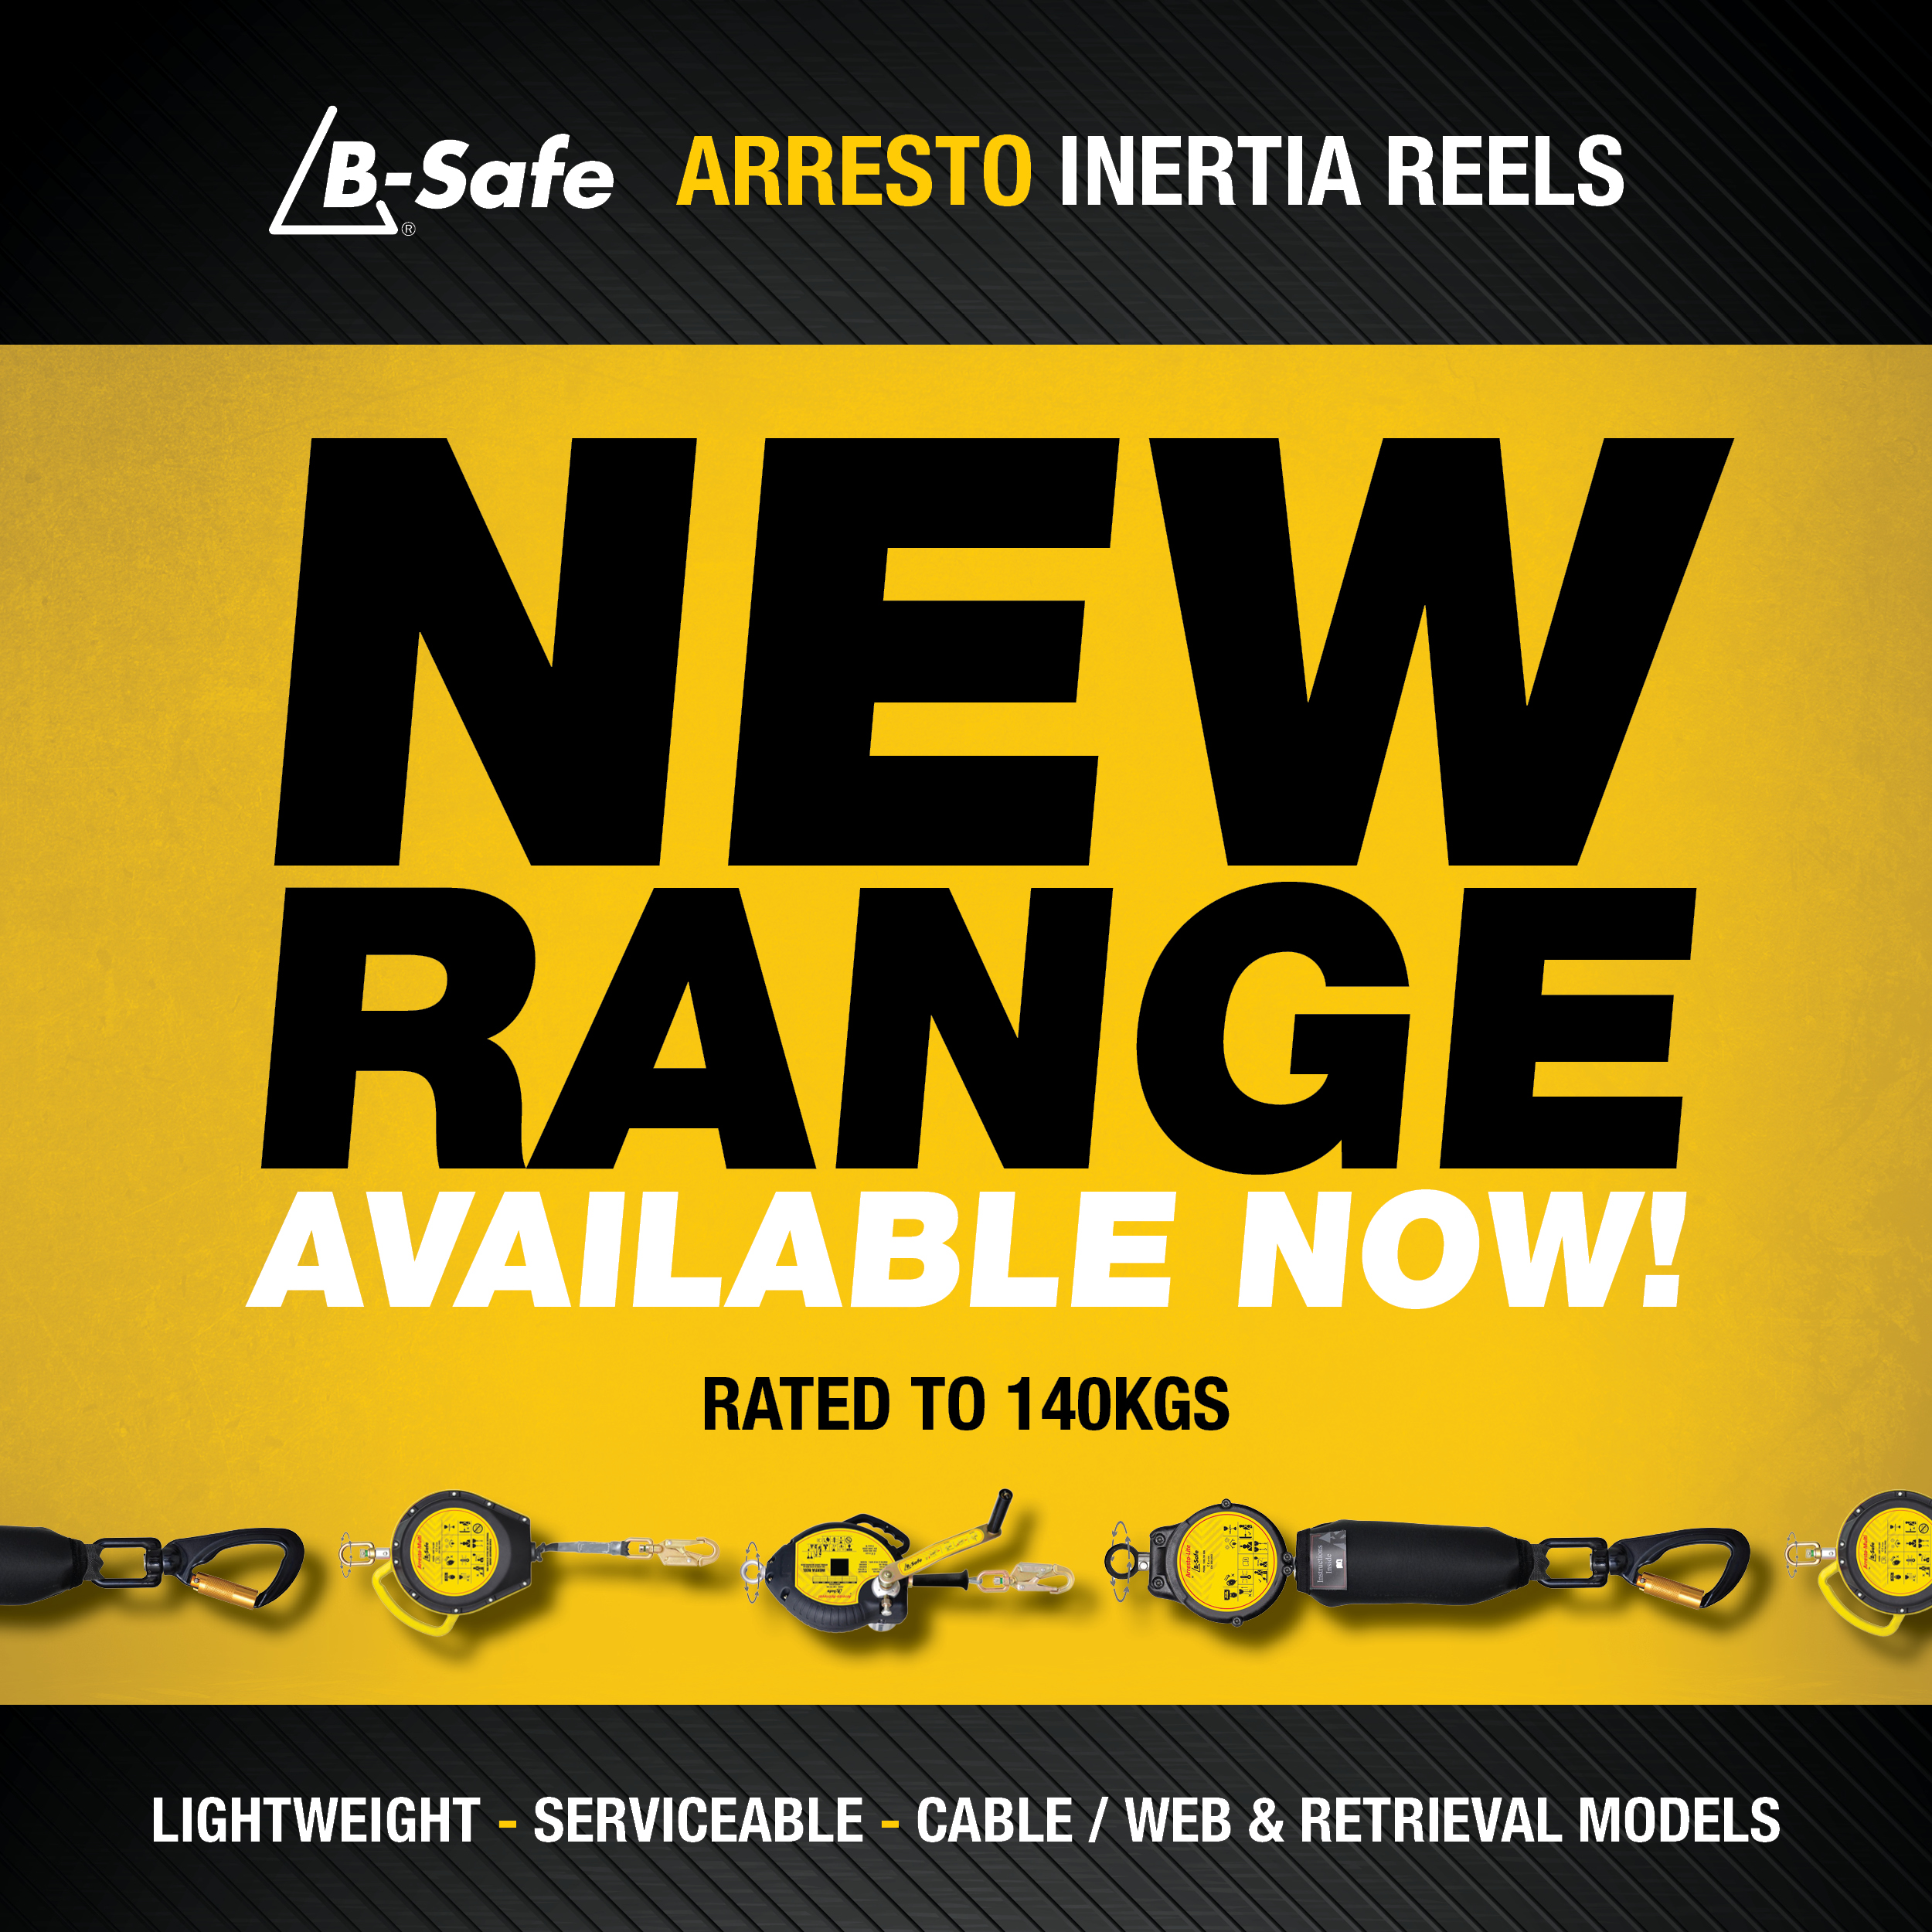 NEW B-safe Arresto Inertia Reels (SRL's) - Rated to 140kgs